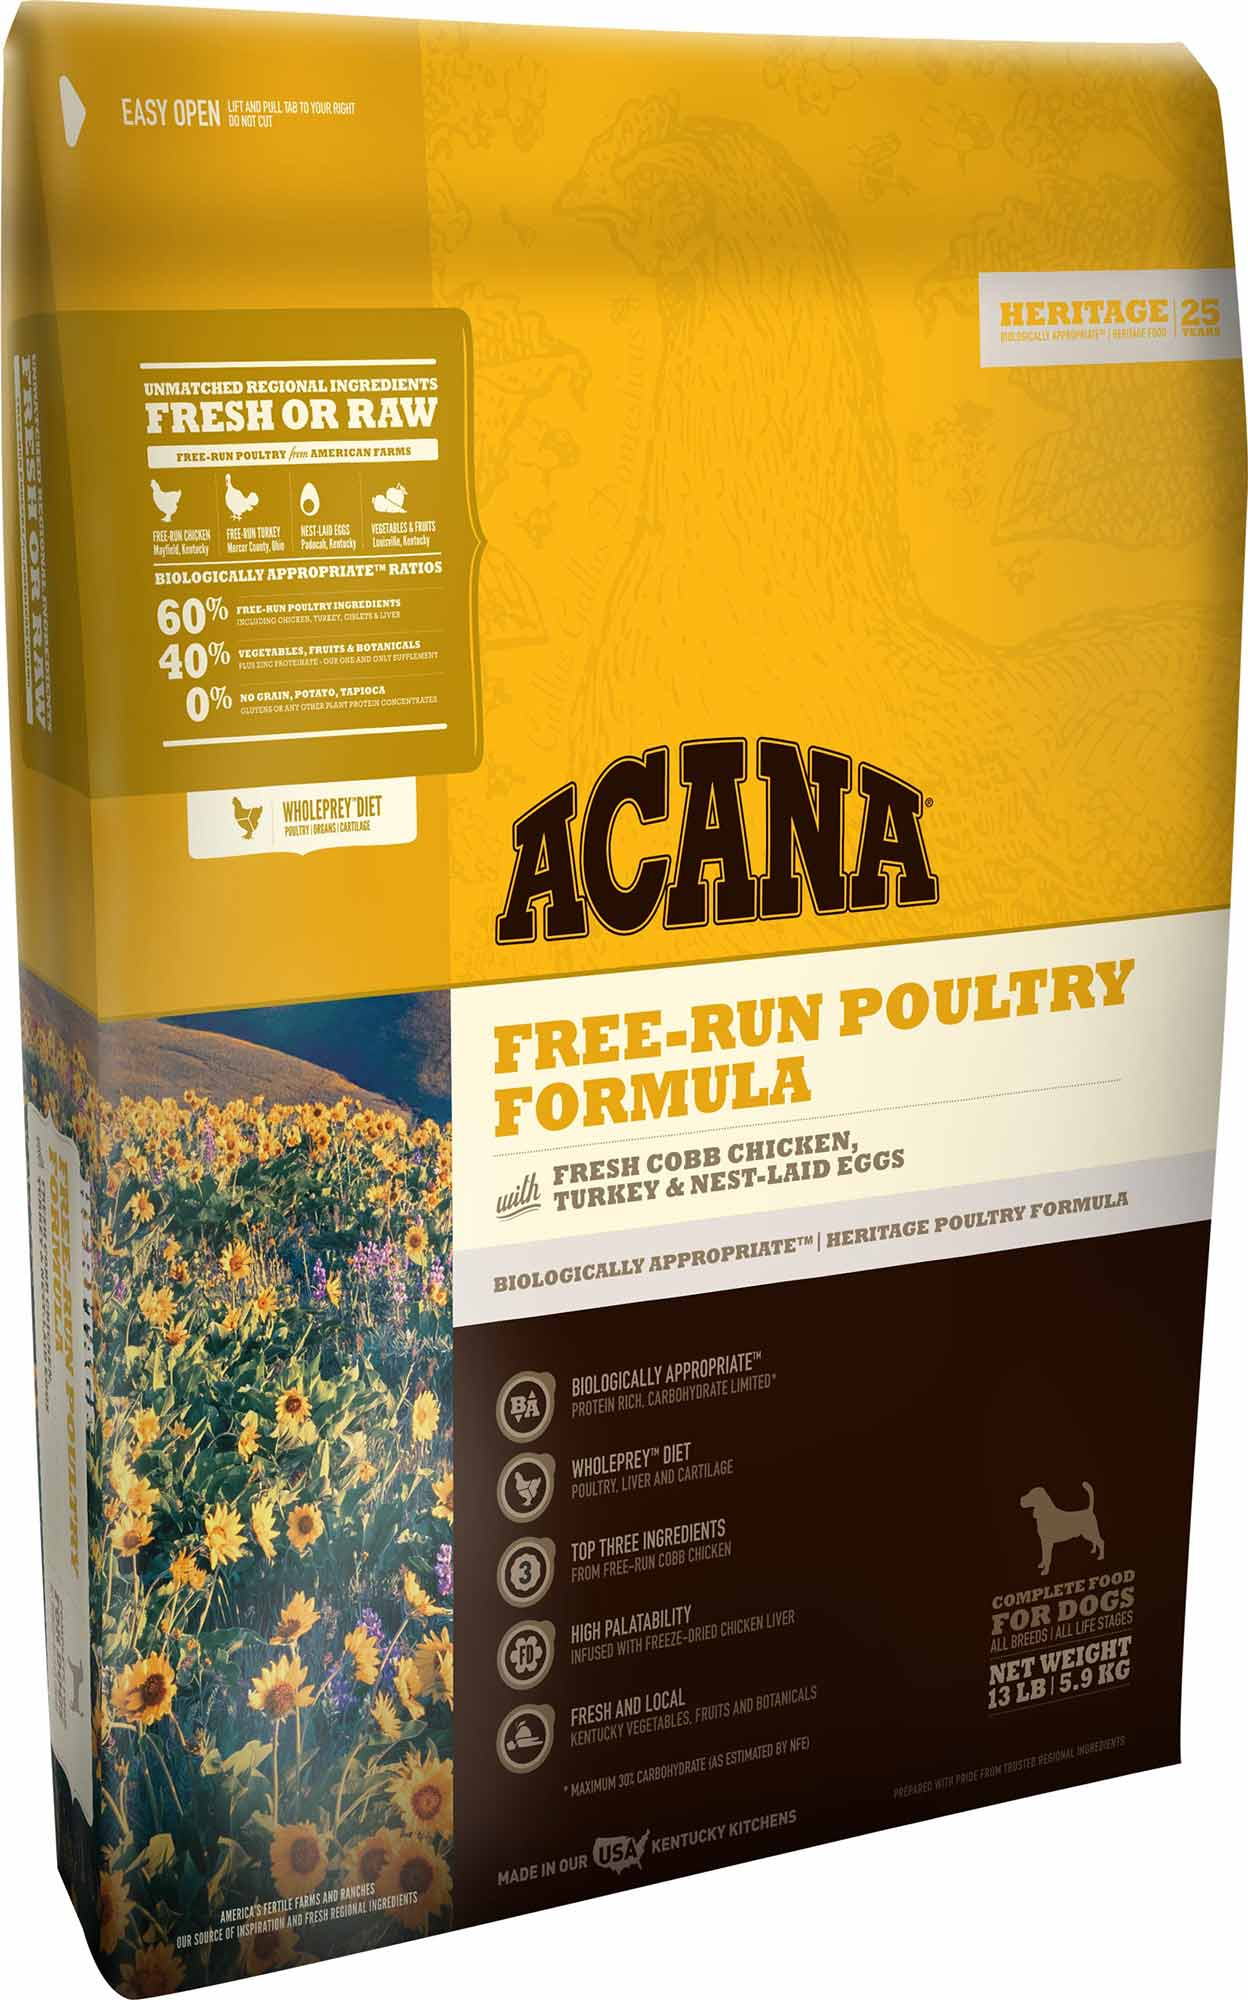 Acana Poultry Dry Dog Food